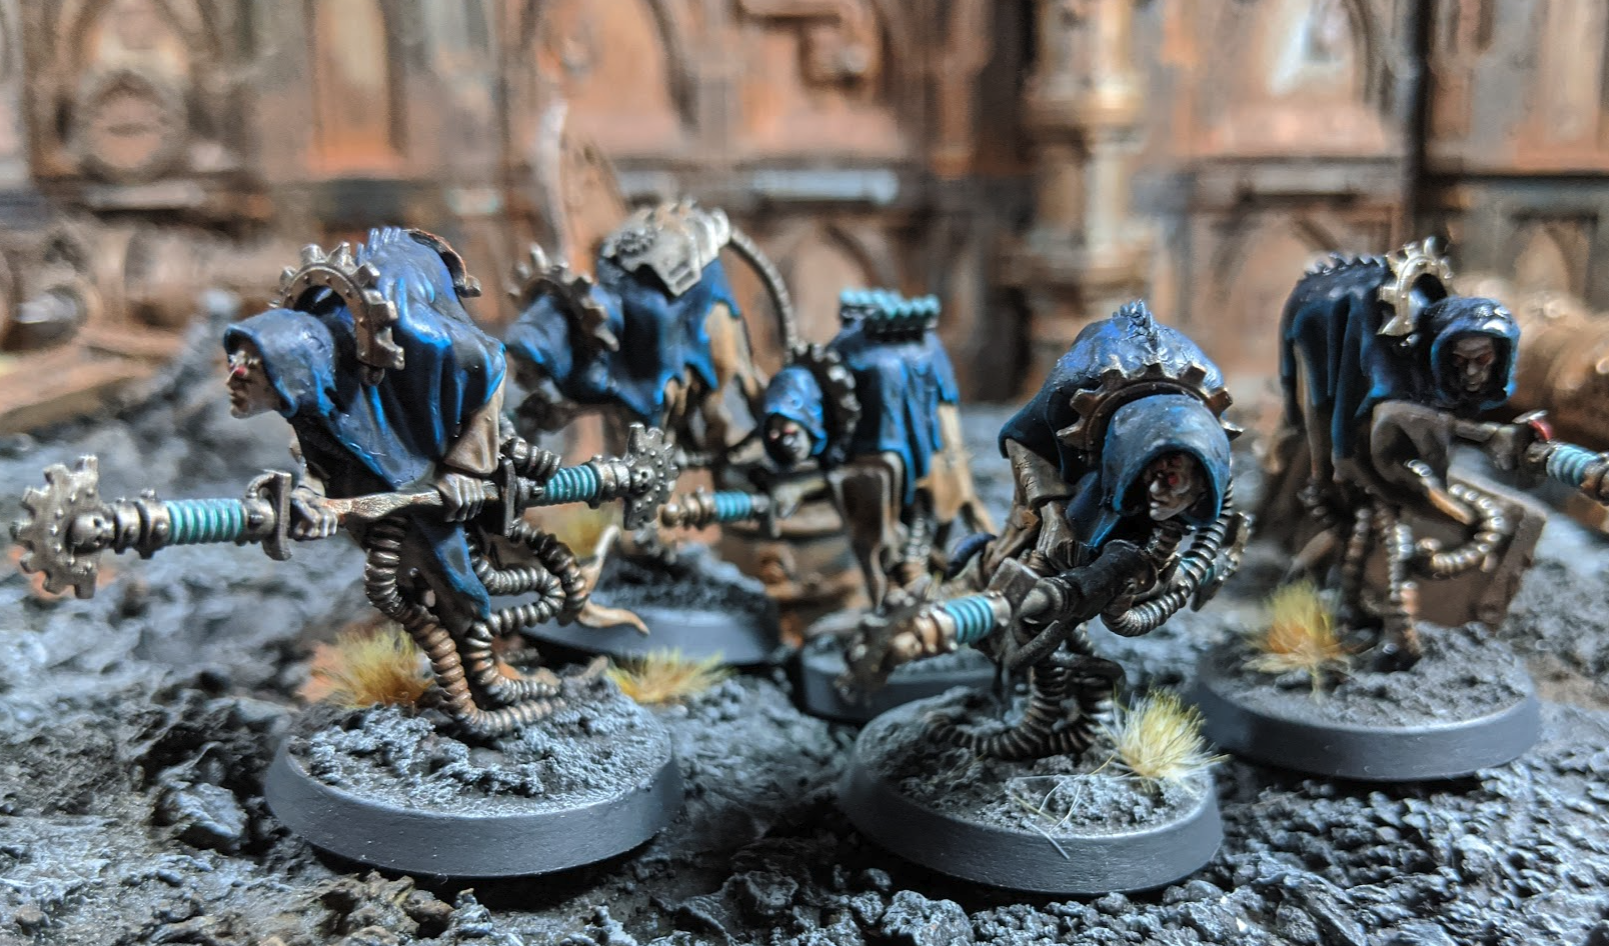 Robed 28mm ghostlike miniatures with large electric rods and snaking mechanical tentacles